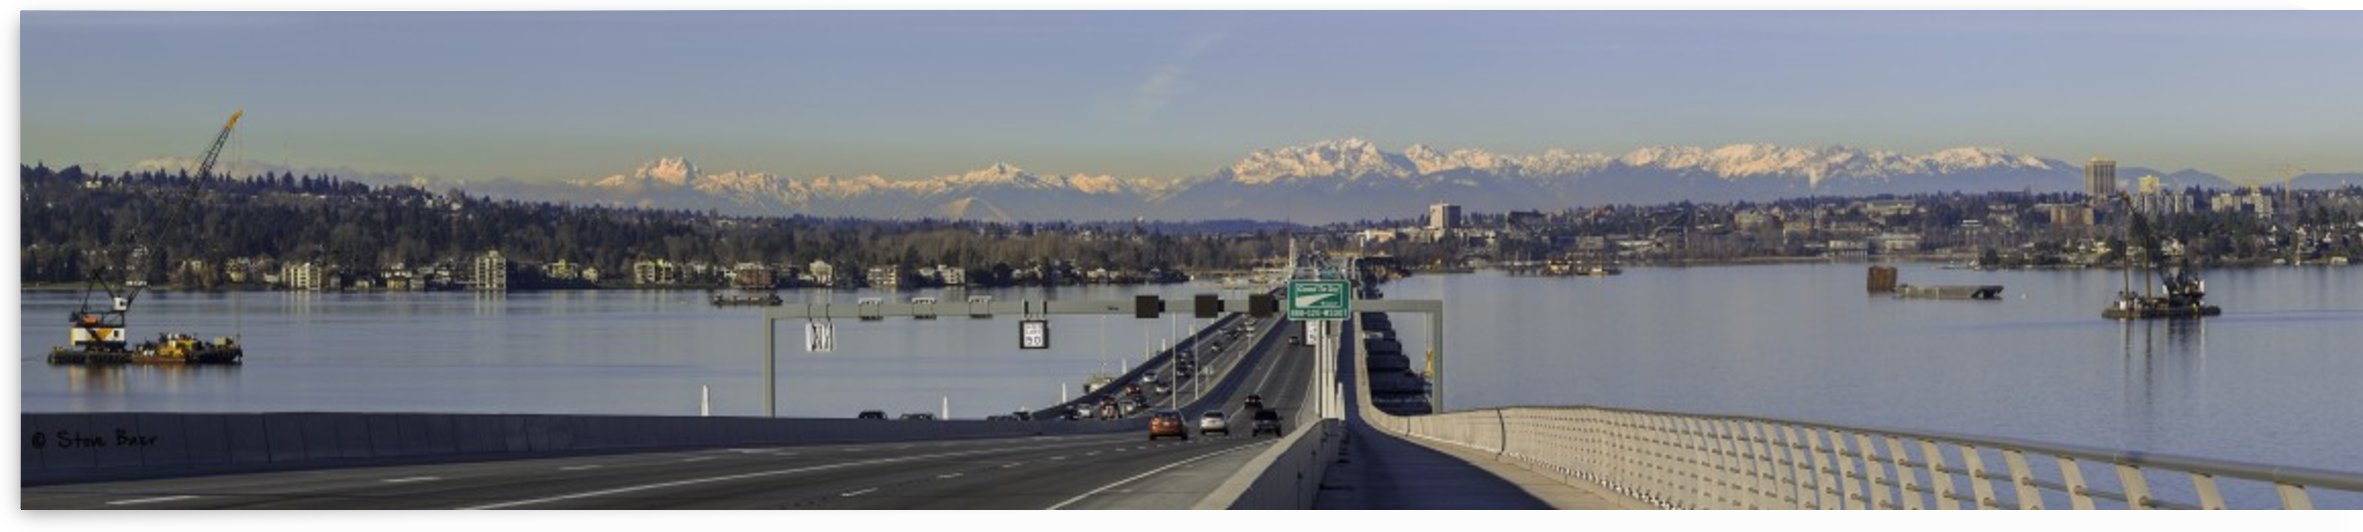 Seattle Floating 520 Bridge and Mountains by Steve